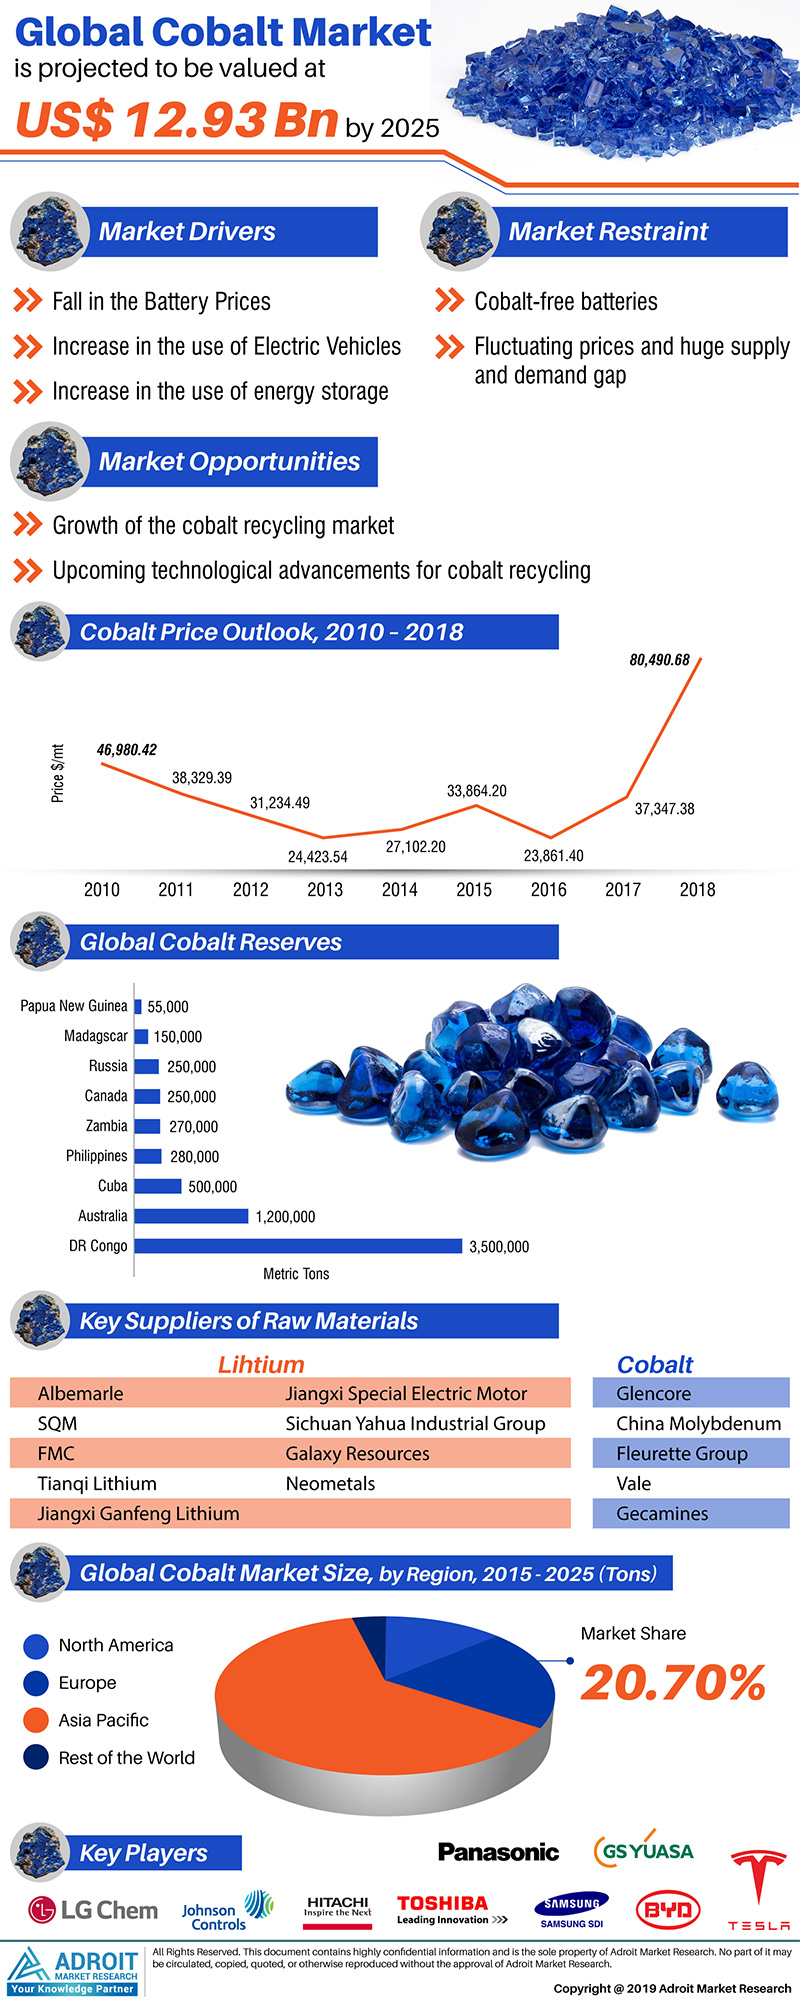 Global Cobalt Market Size 2017 By Application, Region and Forecast 2018 to 2025